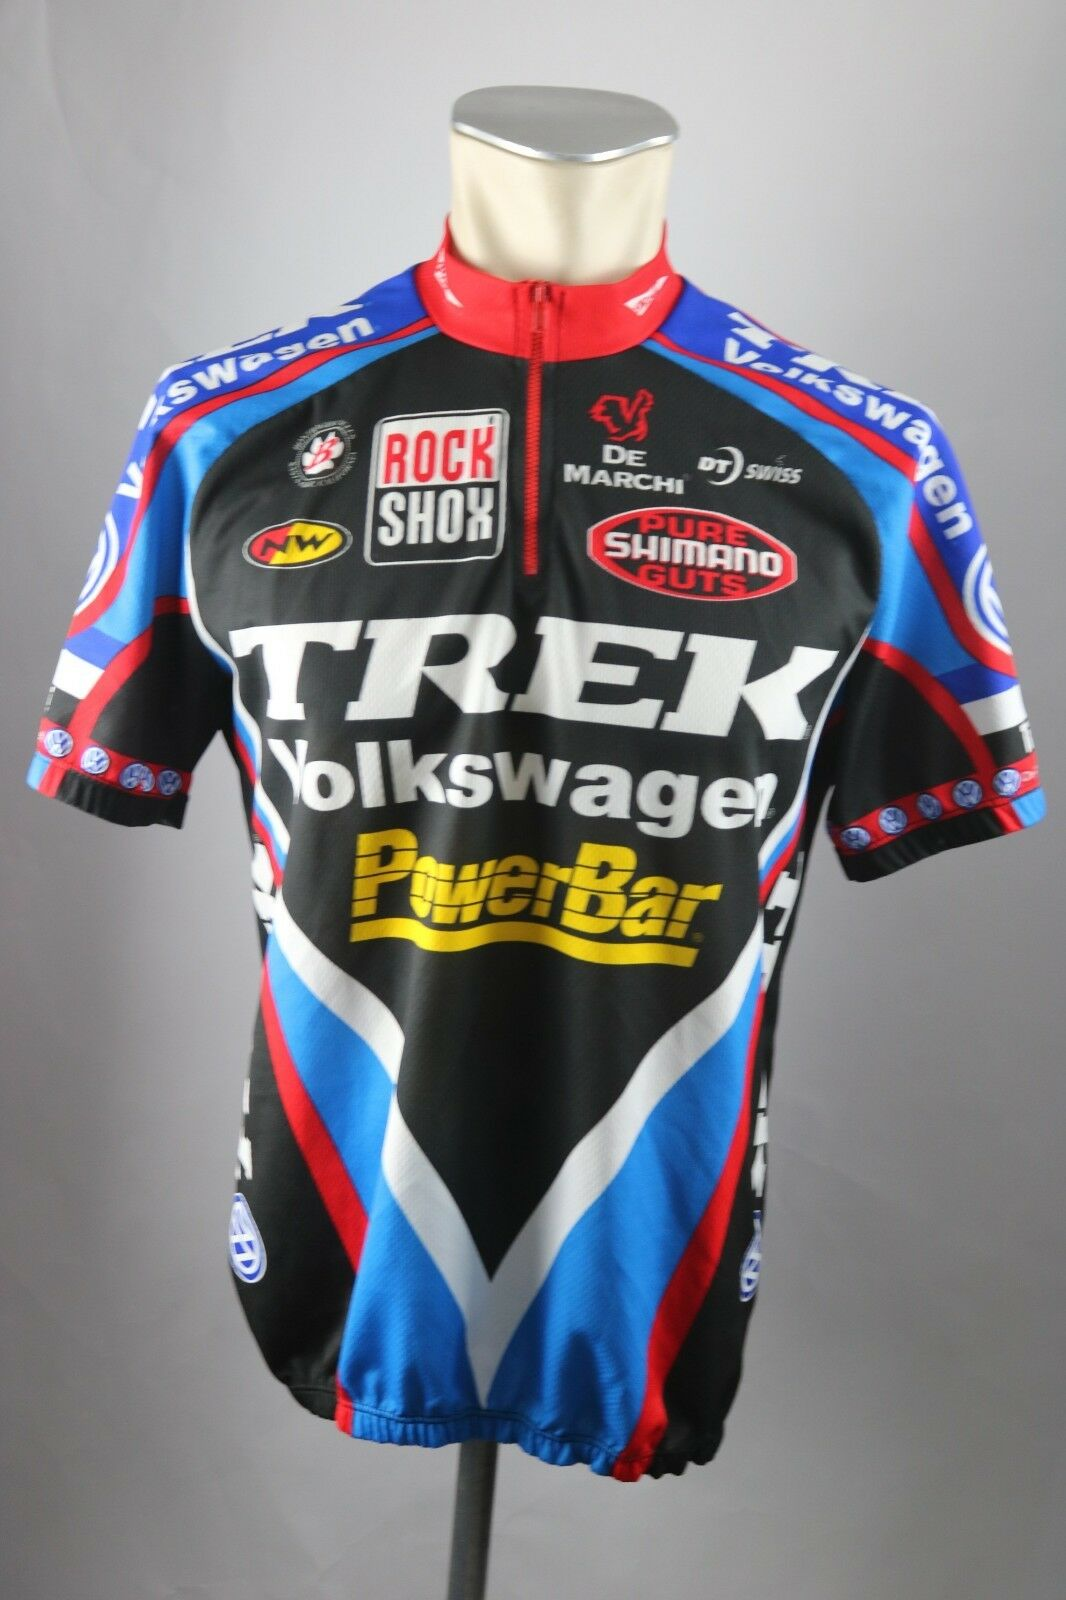 Trek VOLKSWAGEN Powerbar  Cycling Jersey CA L XL BW 56cm Bike Cycling Jersey s5  sale online save 70%